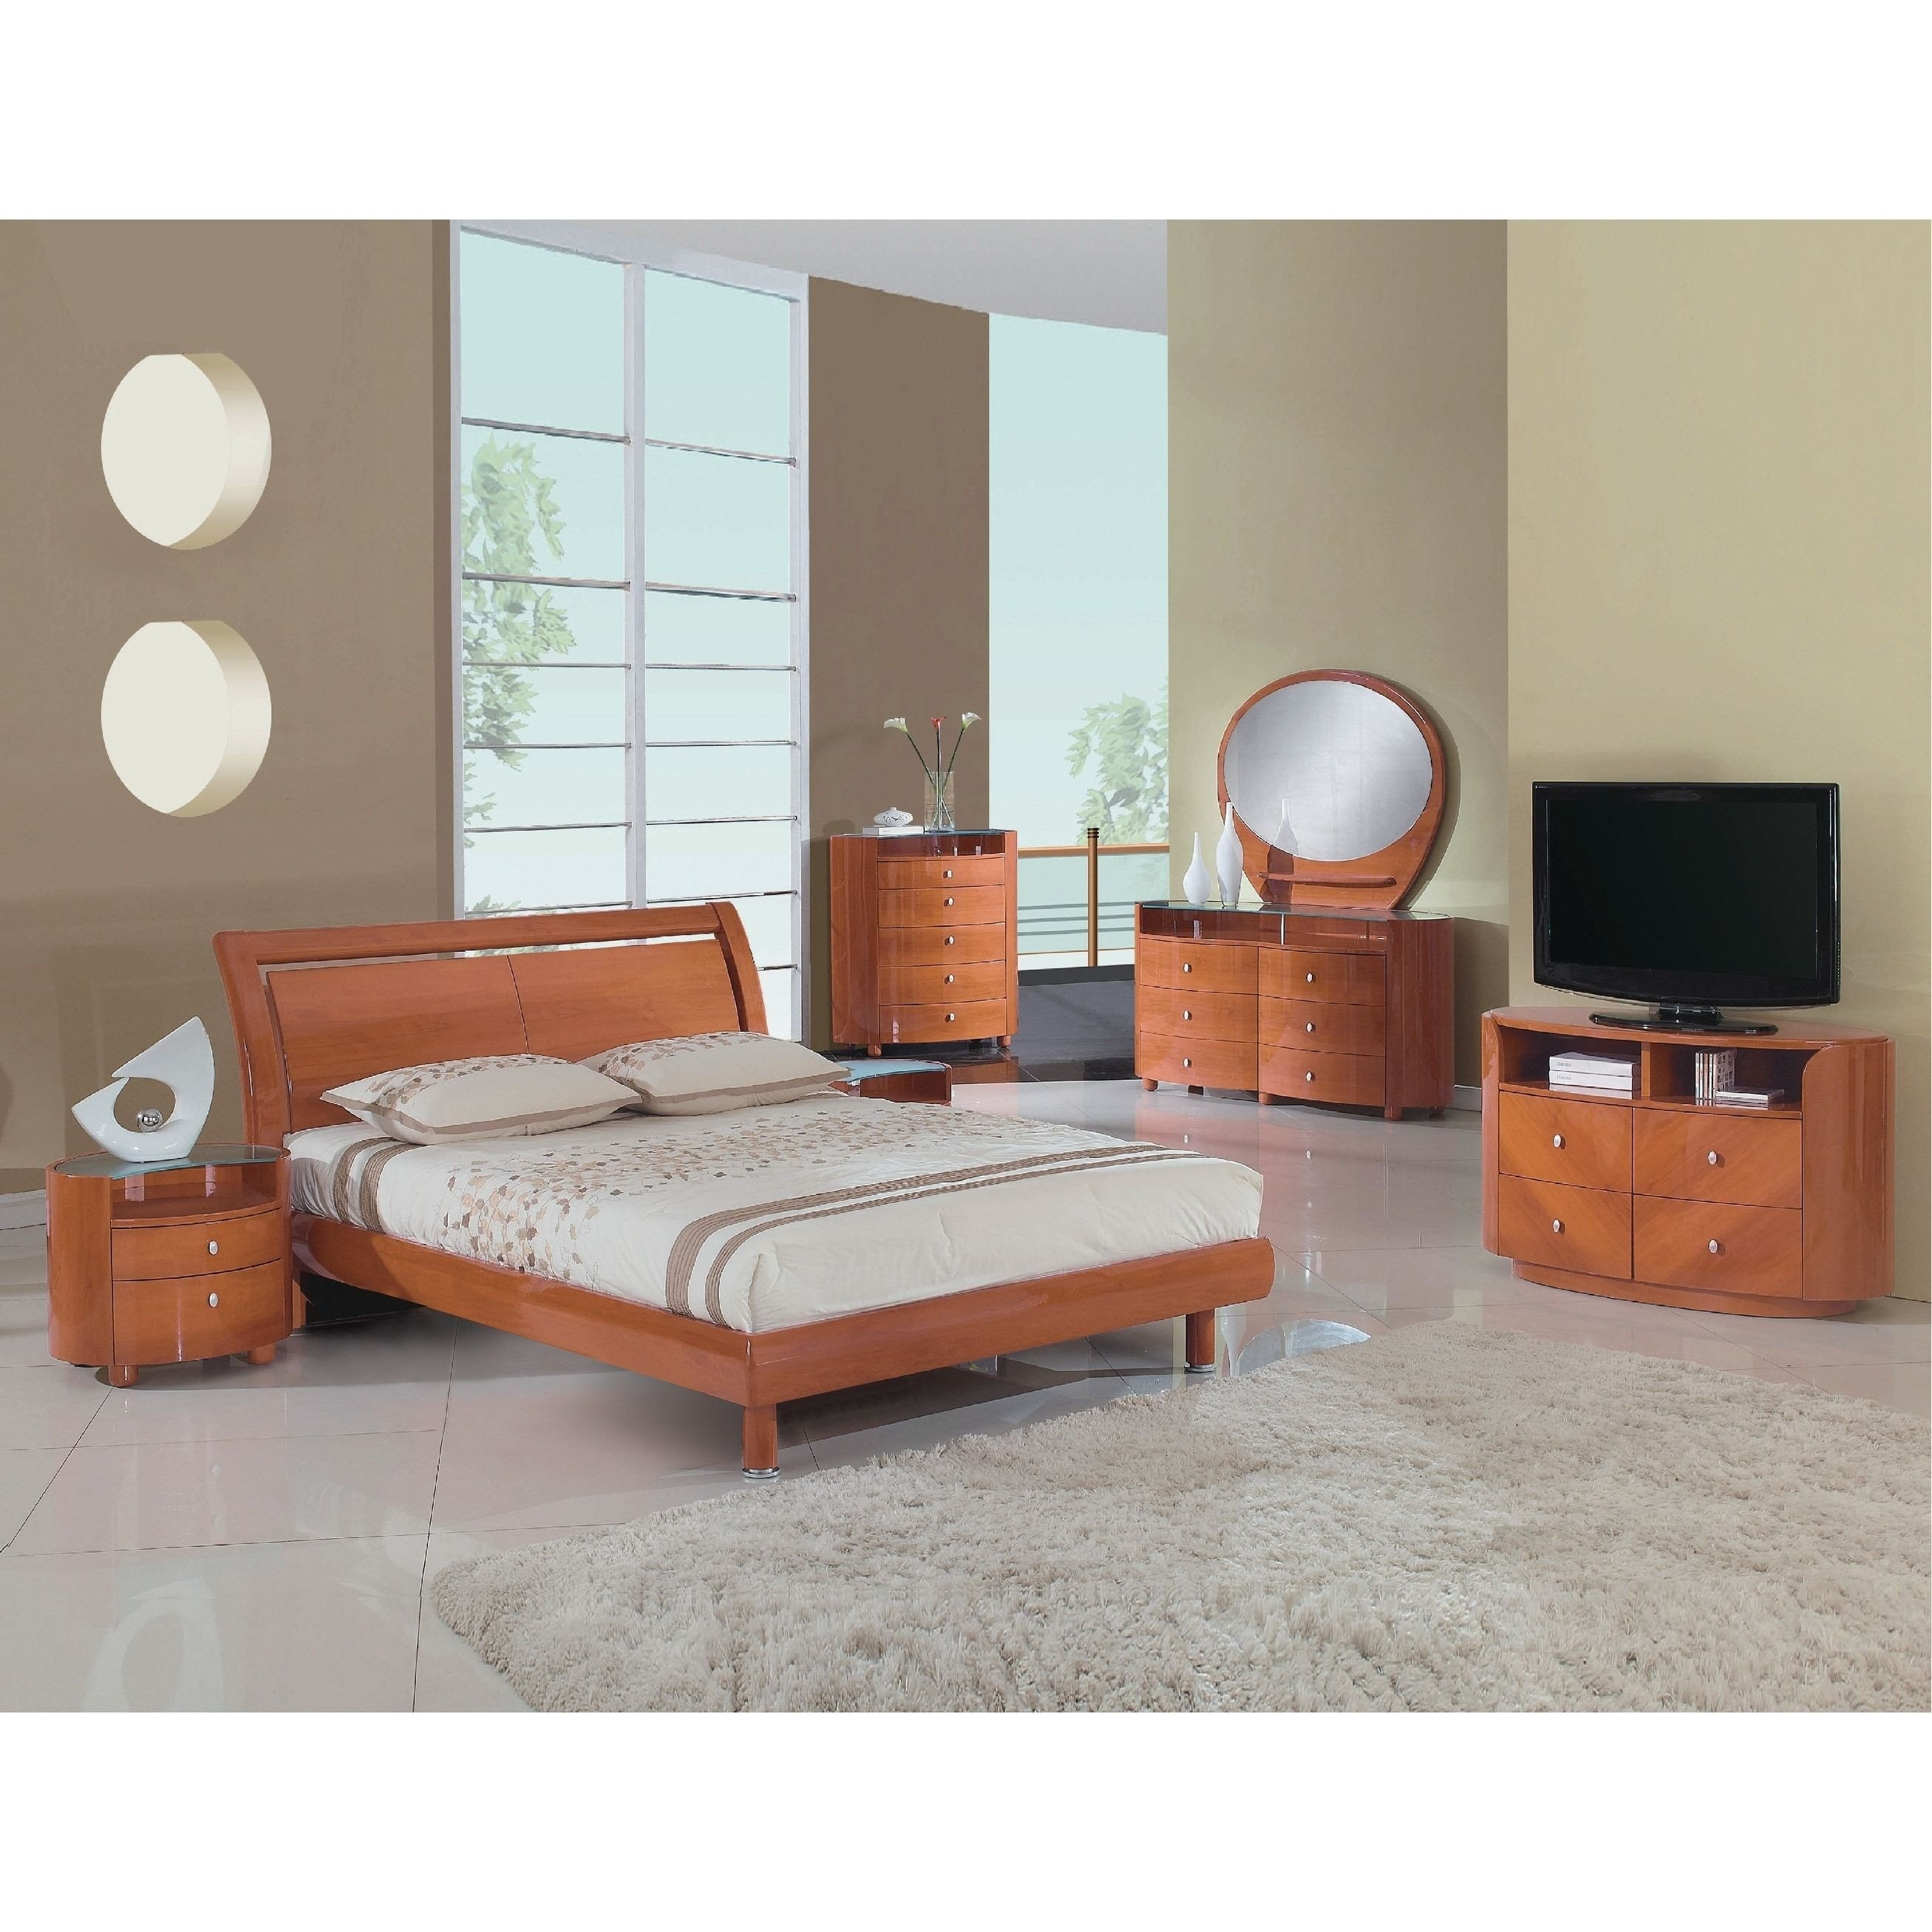 Bedroom Furniture Set Cheap Fresh Line Shopping Bedding Furniture Electronics Jewelry